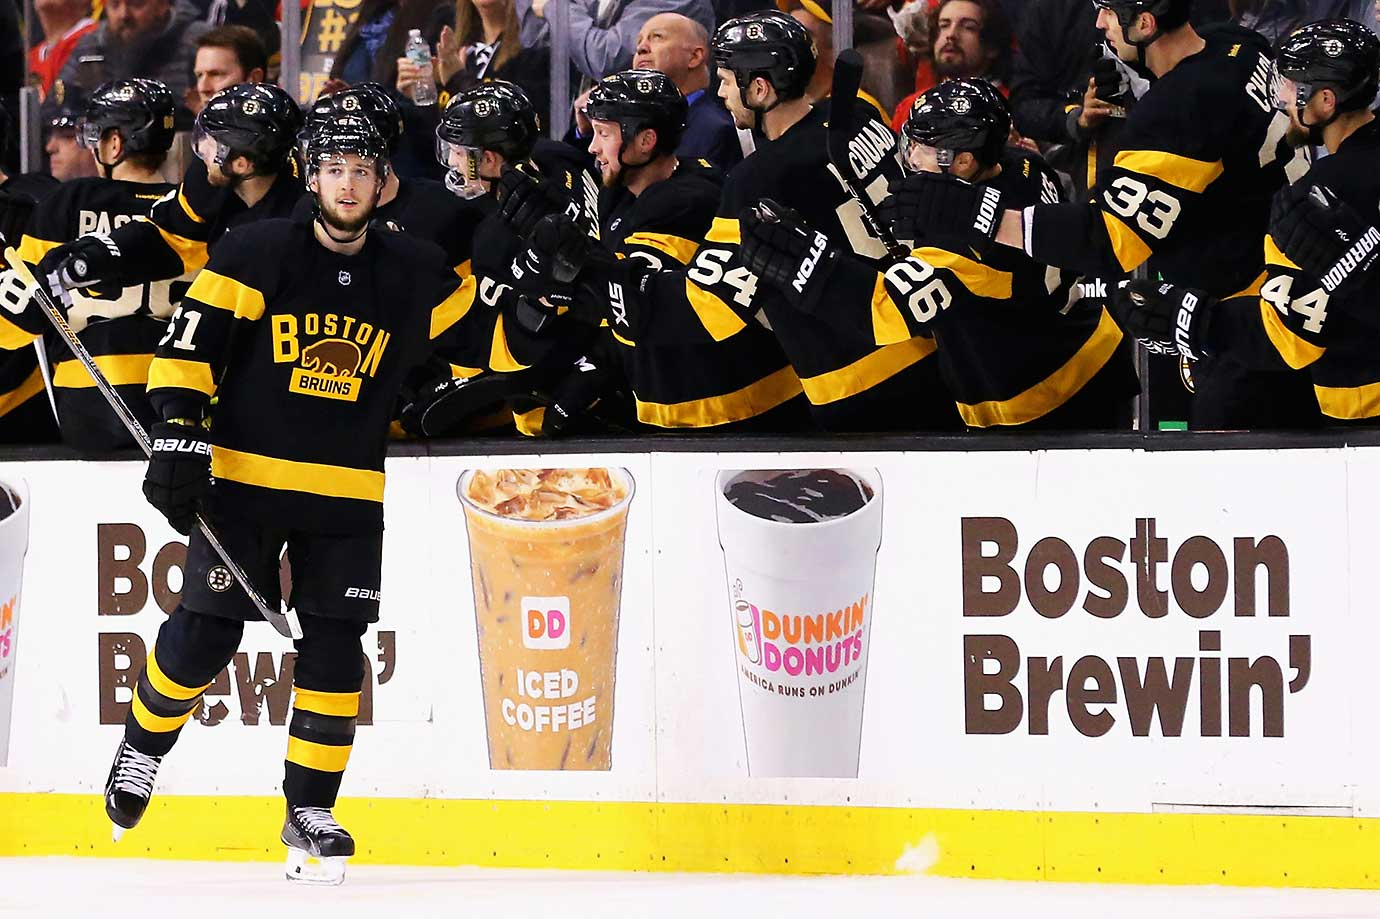 Bruins management and Dunkin' Donuts with a bit of clever advertising at TD Garden.